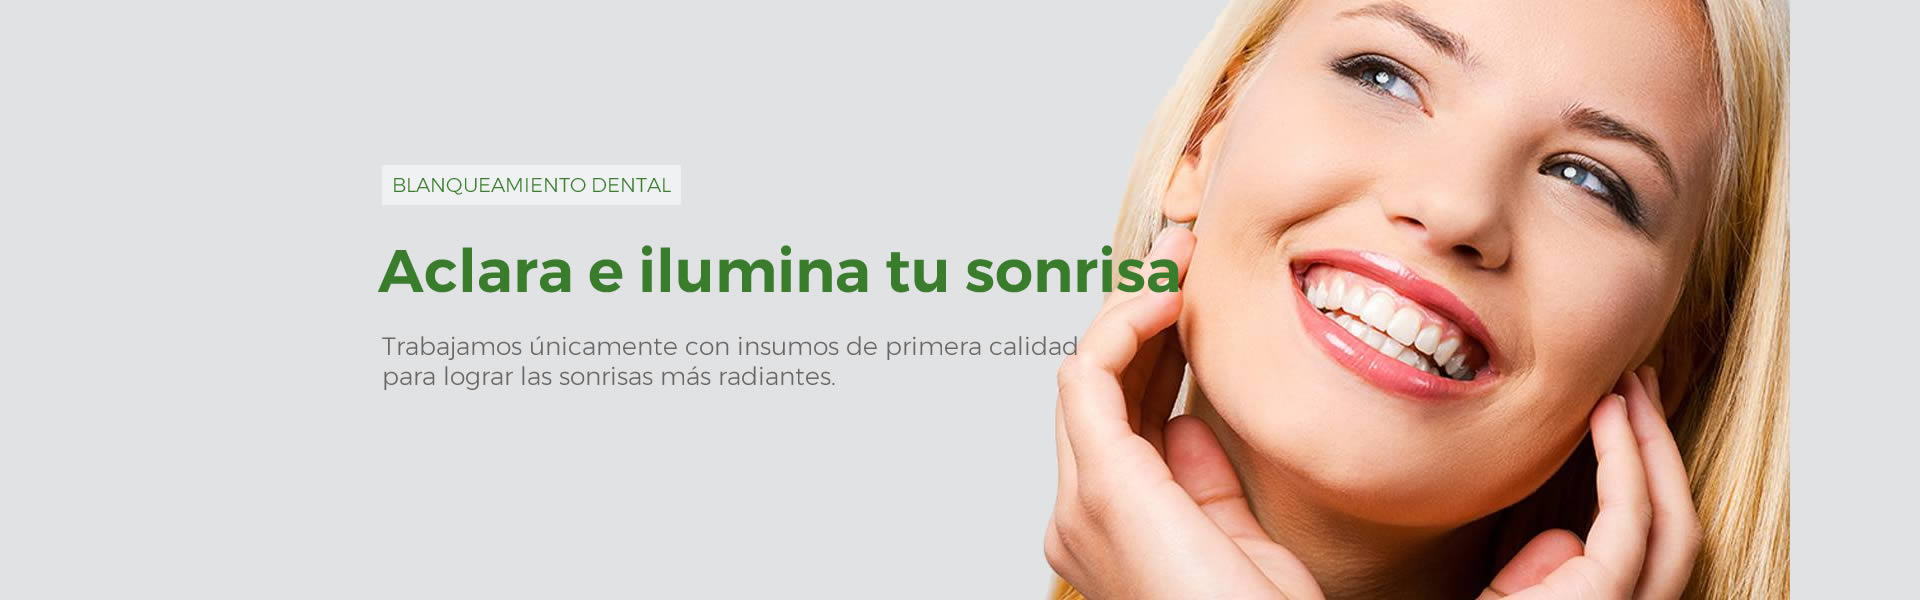 blanqueamiento-dental-en-pozuelo-drablois-madrid-clinica-dental